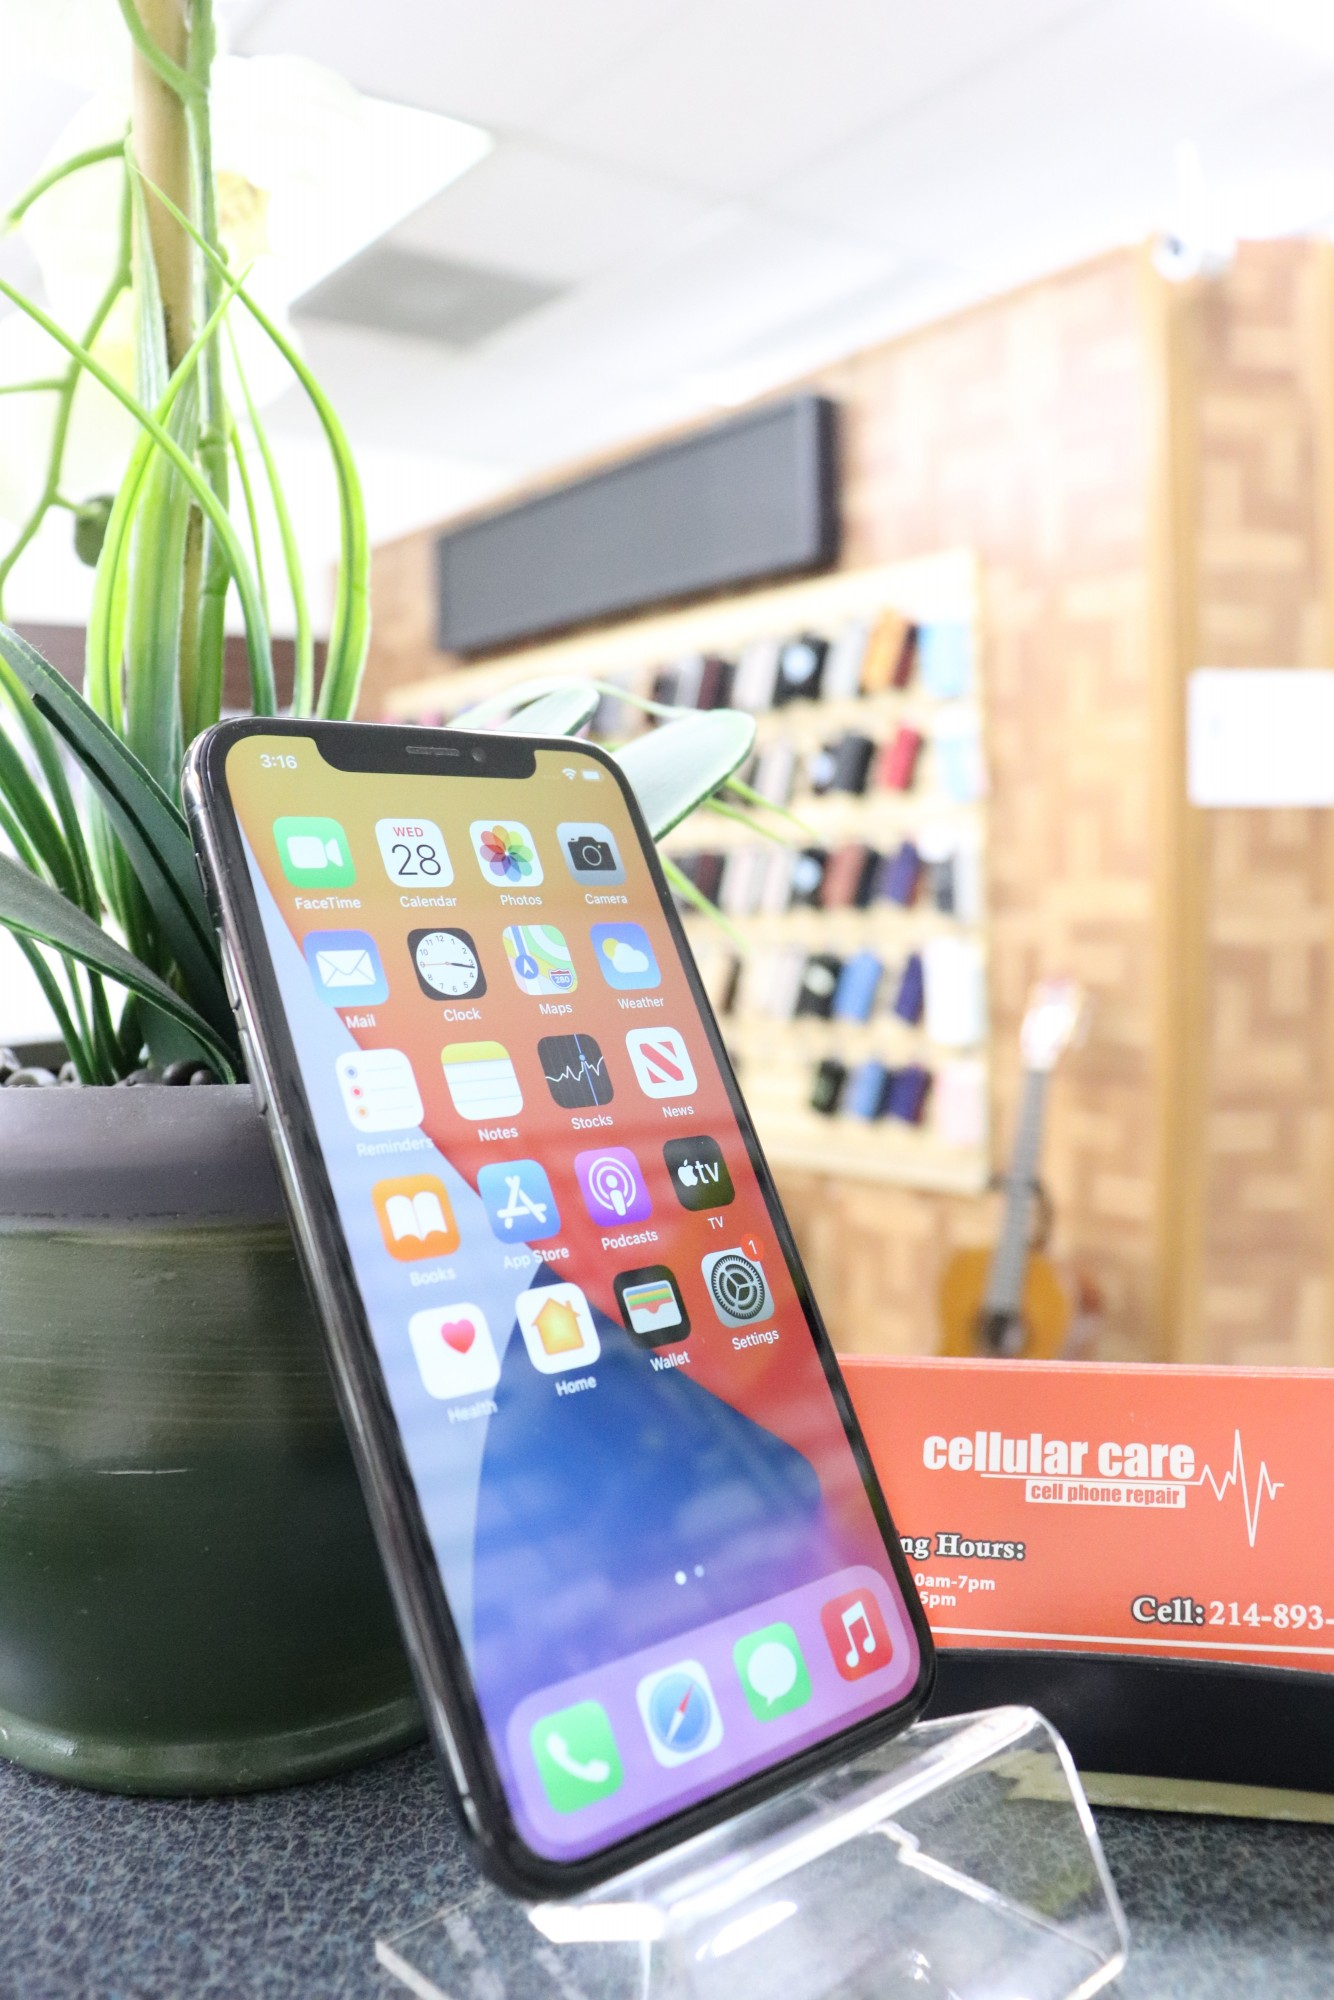 1651 – iPhone X 64GB Space Gray Unlocked $320 – Store Pick Up Address: Cellular Care 300 N Coit Rd #157 Richardson TX, 75080 Mon-Sat: 11Am to 7Pm Sun: 12 to 5Pm *About this item: -Condition: 9/10 -30 Days Warranty By Cellular Care.